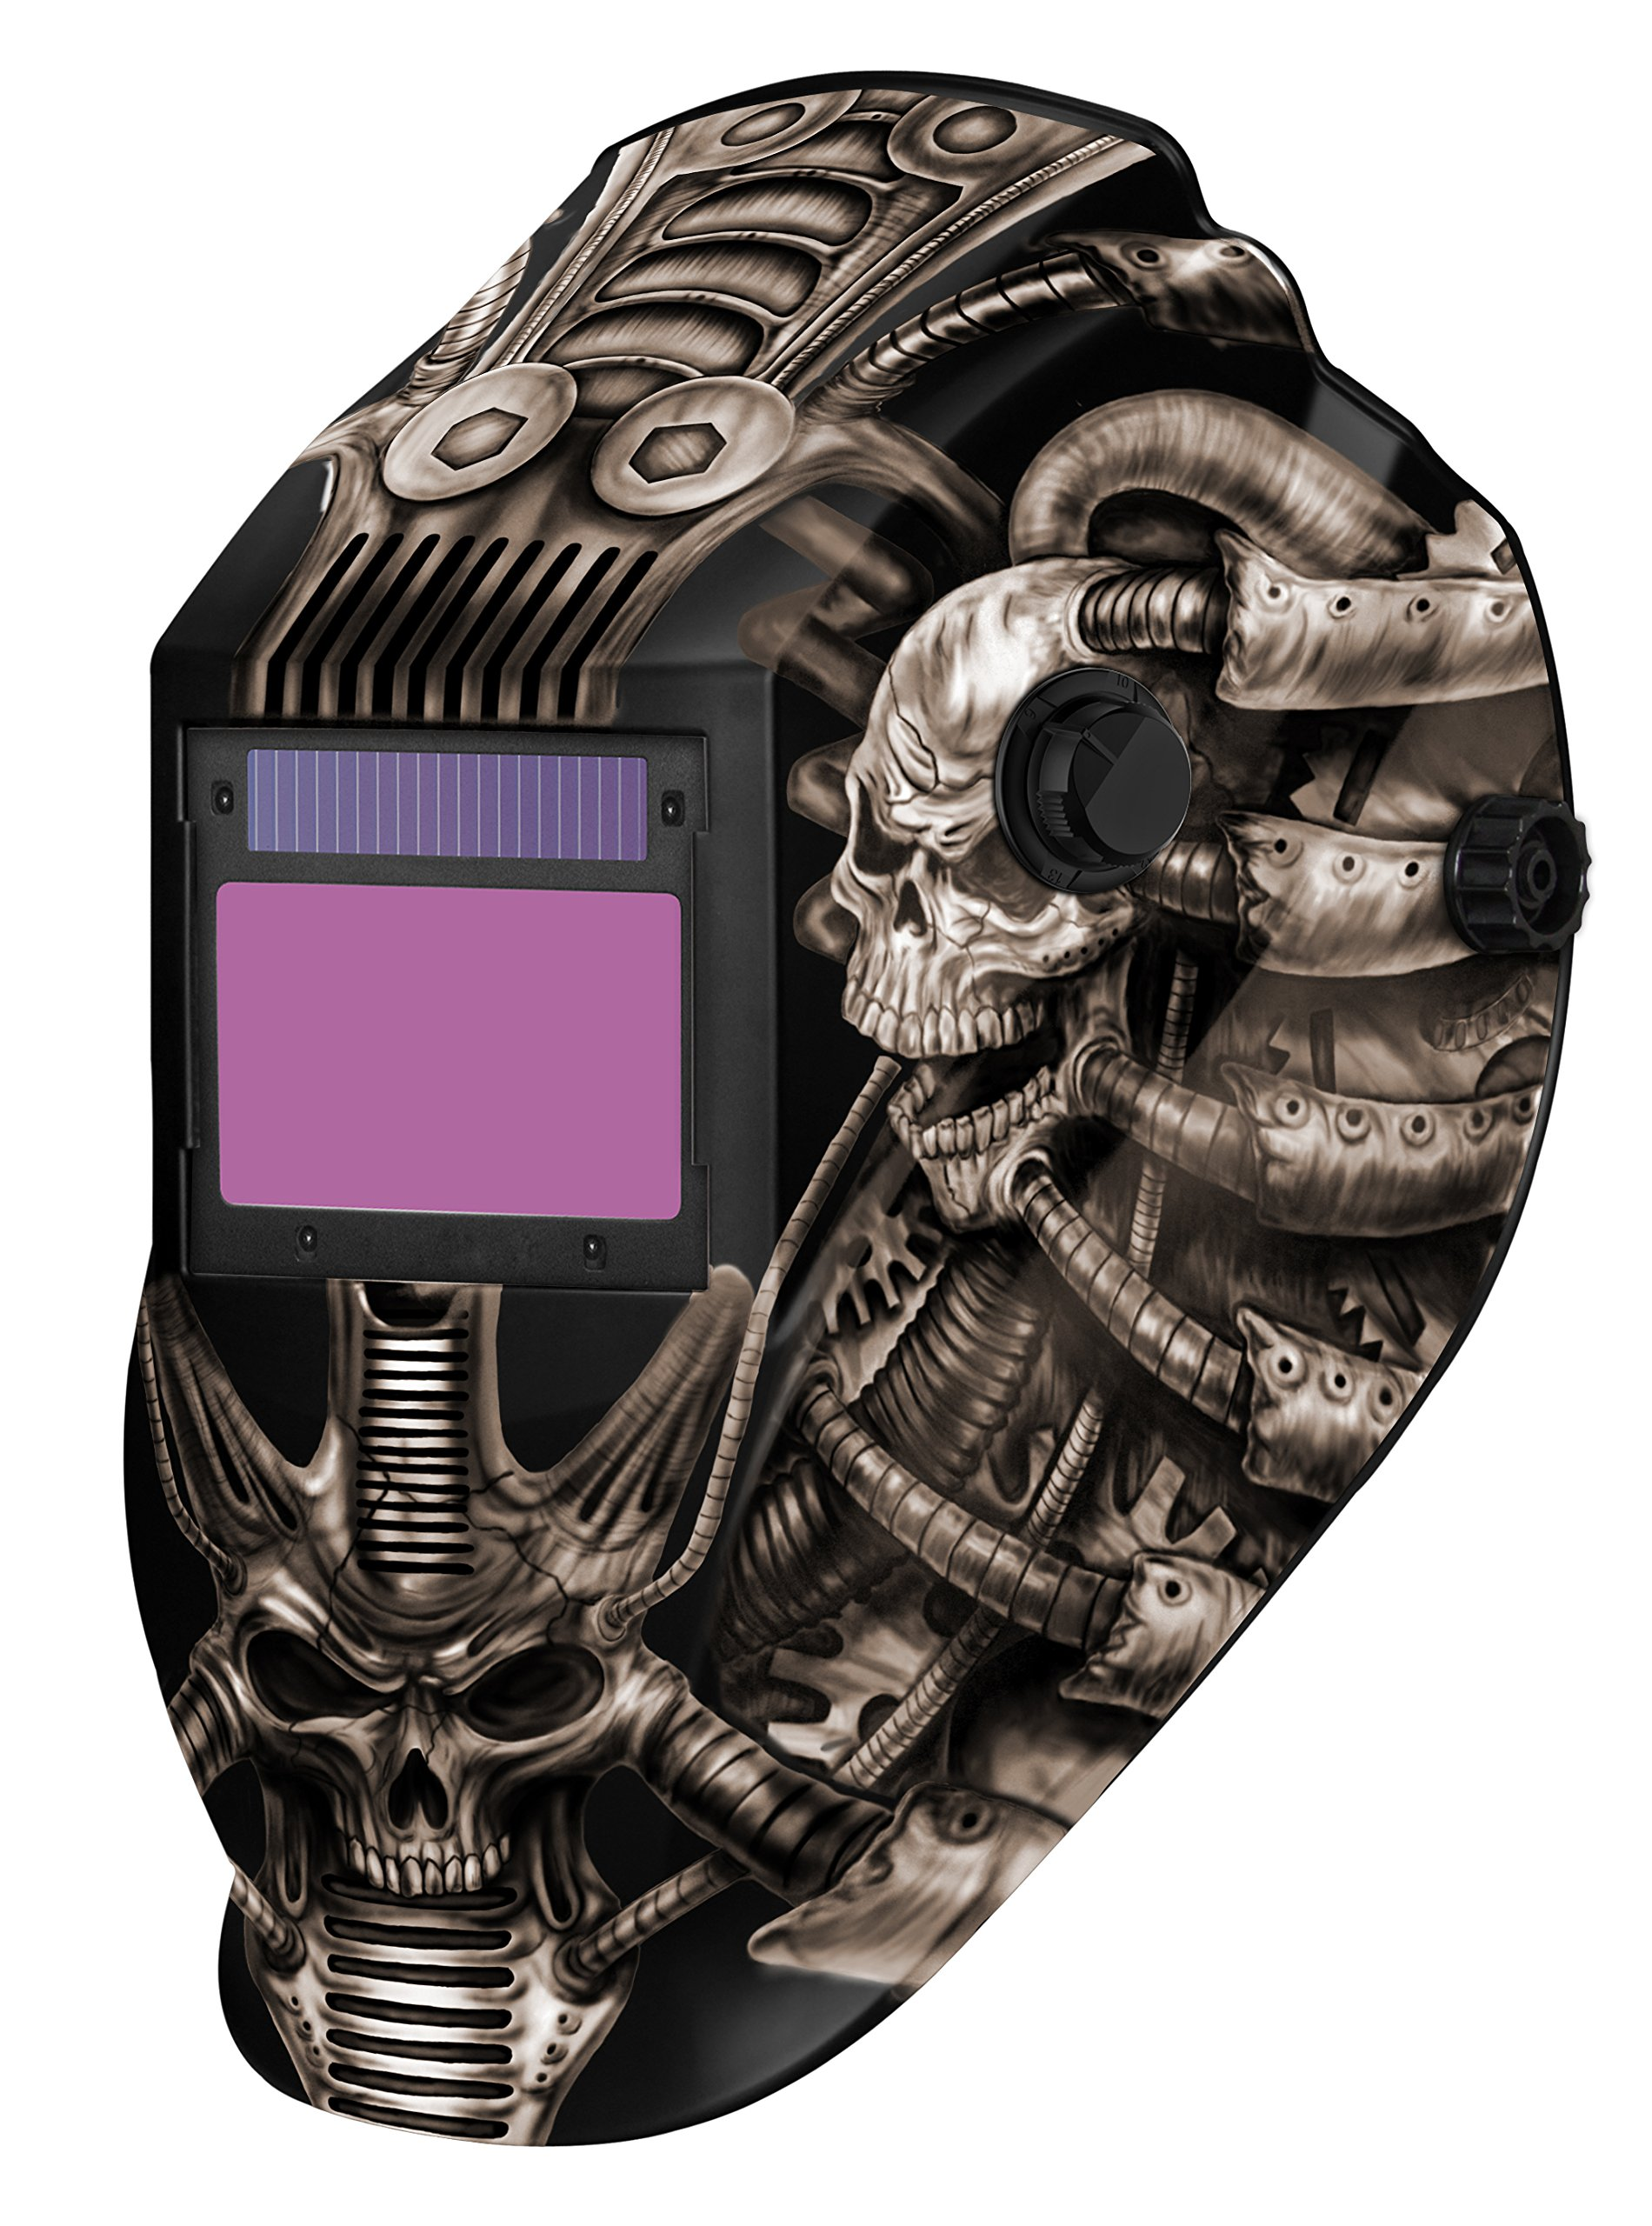 Metal Man ATEC8735SGC 9-13 Variable Shade Professional Auto-Darkening Welding Helmet, Techno Skull by Metal Man